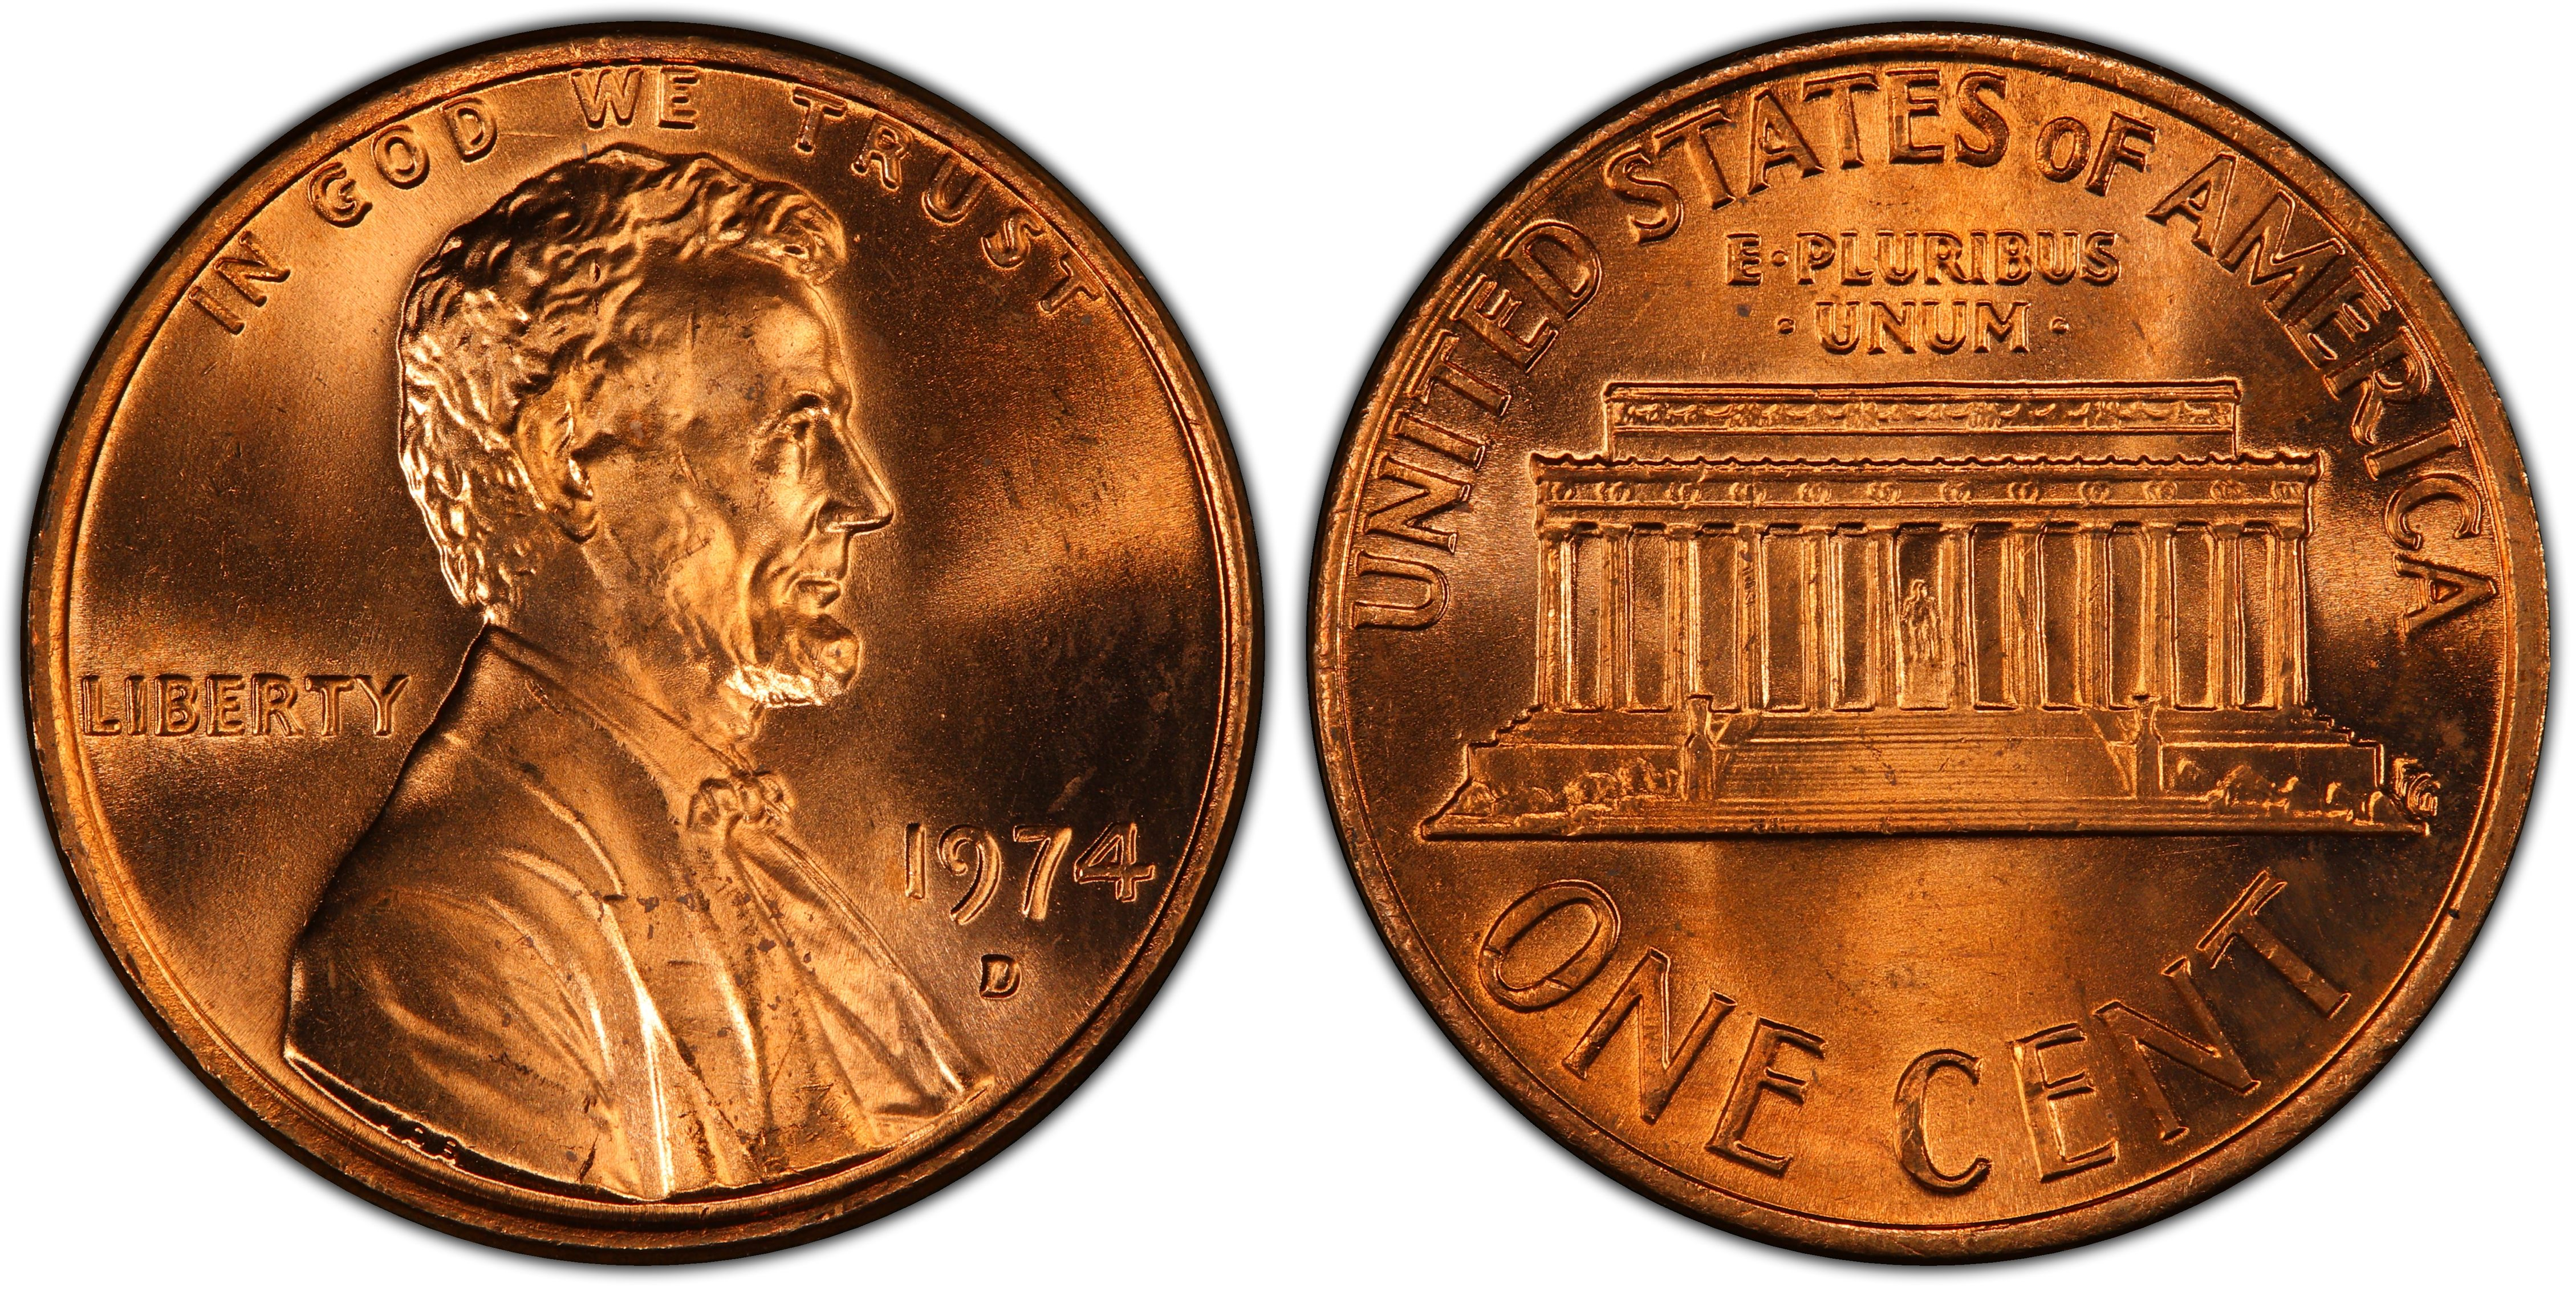 1974 d penny value